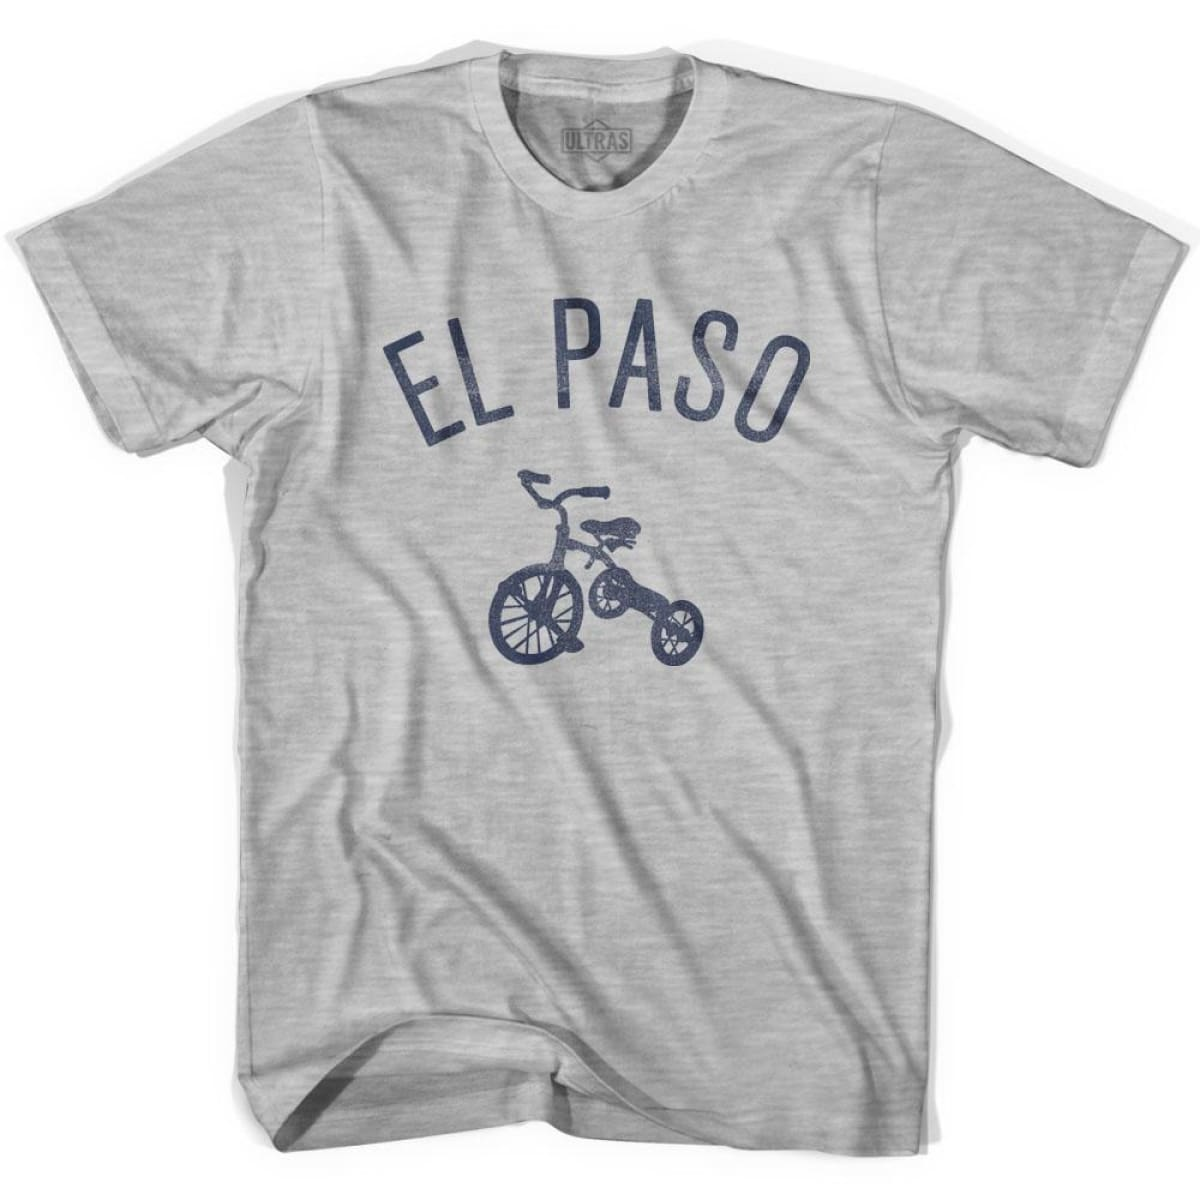 El Paso City Tricycle Womens Cotton T-shirt - Tricycle City